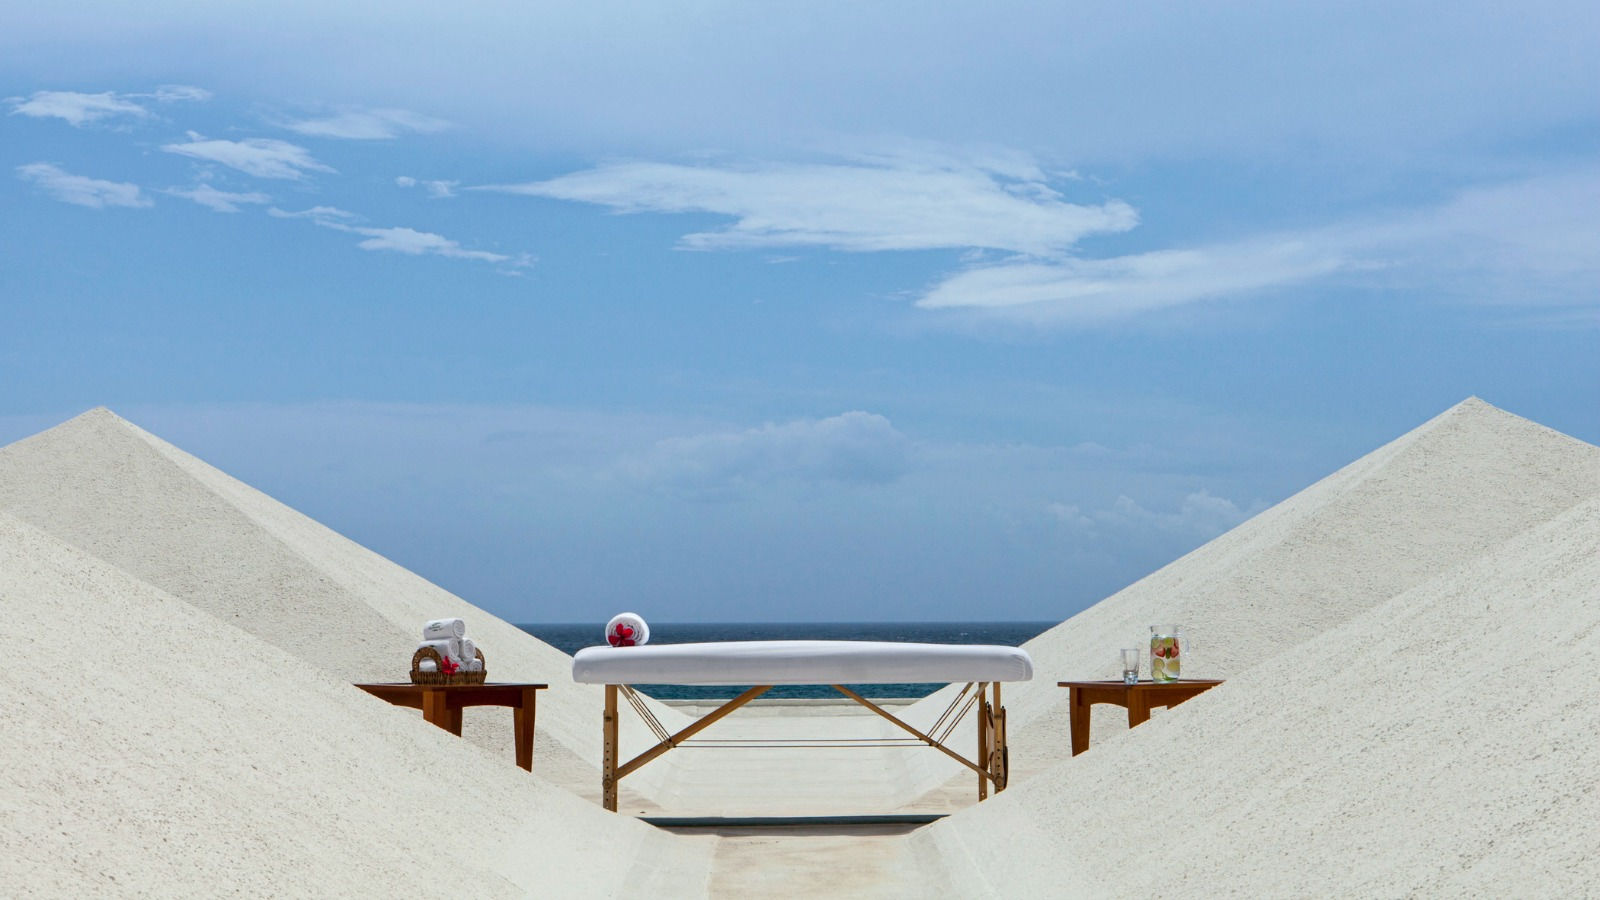 Heavenly Cancun Spa - The Westin Cancun Resort & Spa